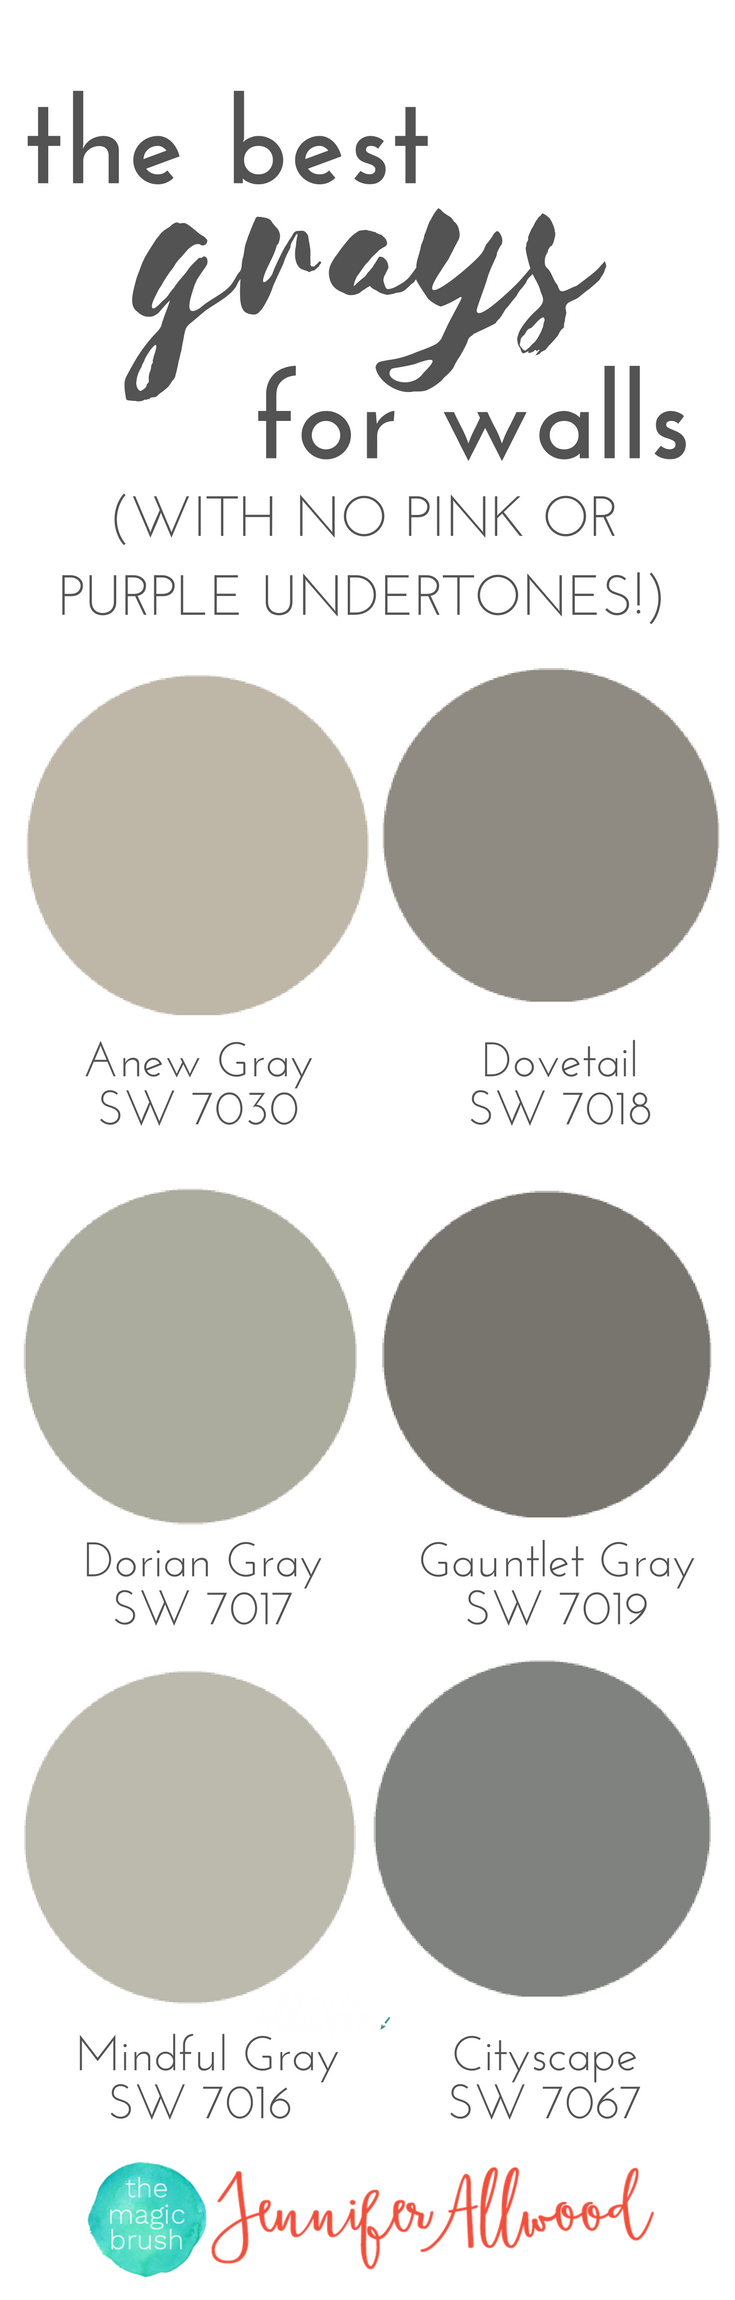 The Best Gray Paint Colors For Walls With No Pink Or Purple Undertones Magic Brush Jennifer